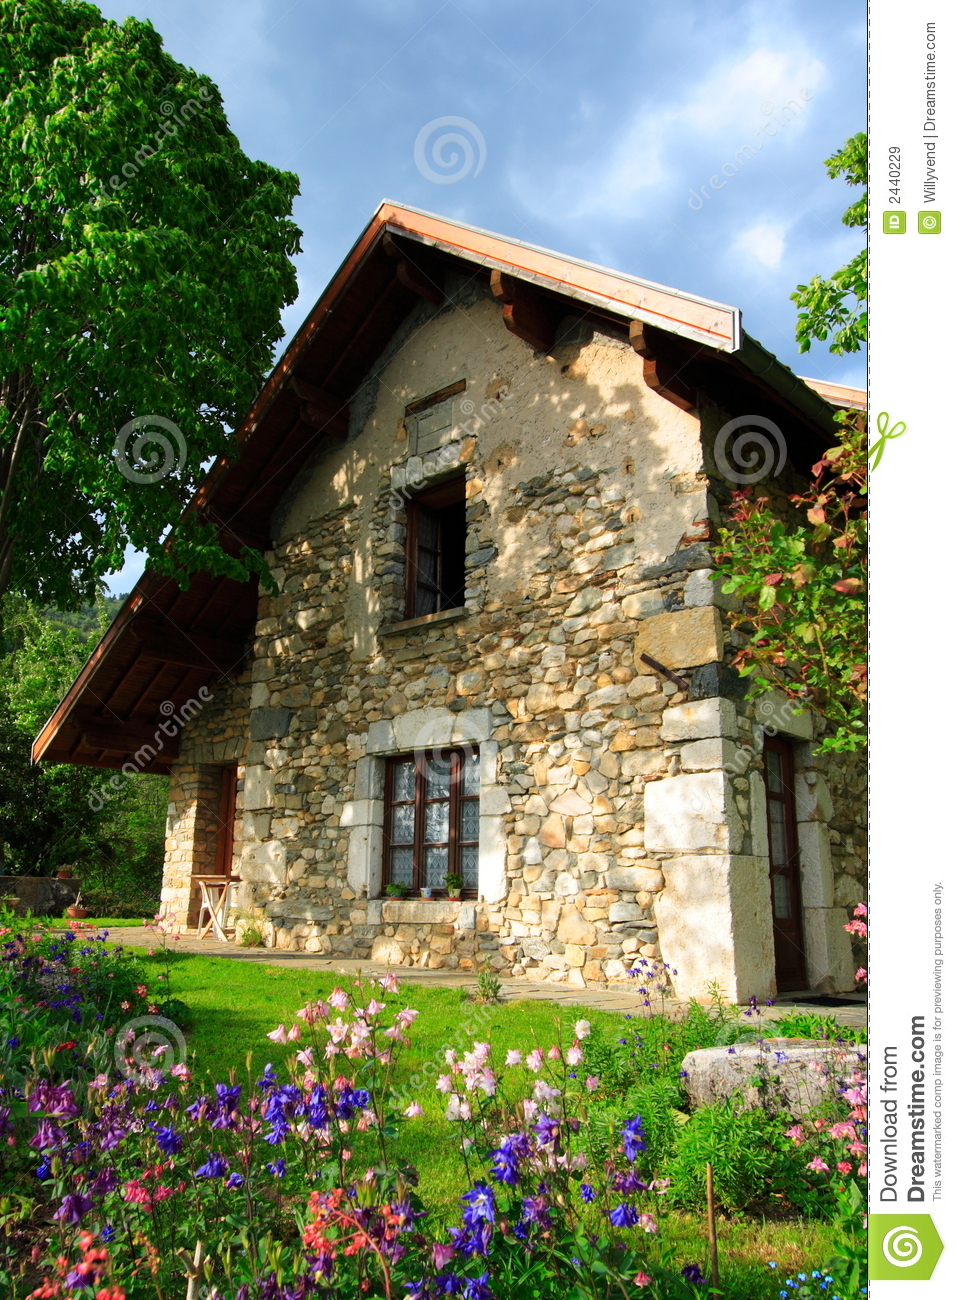 Superb stone-built house and garden